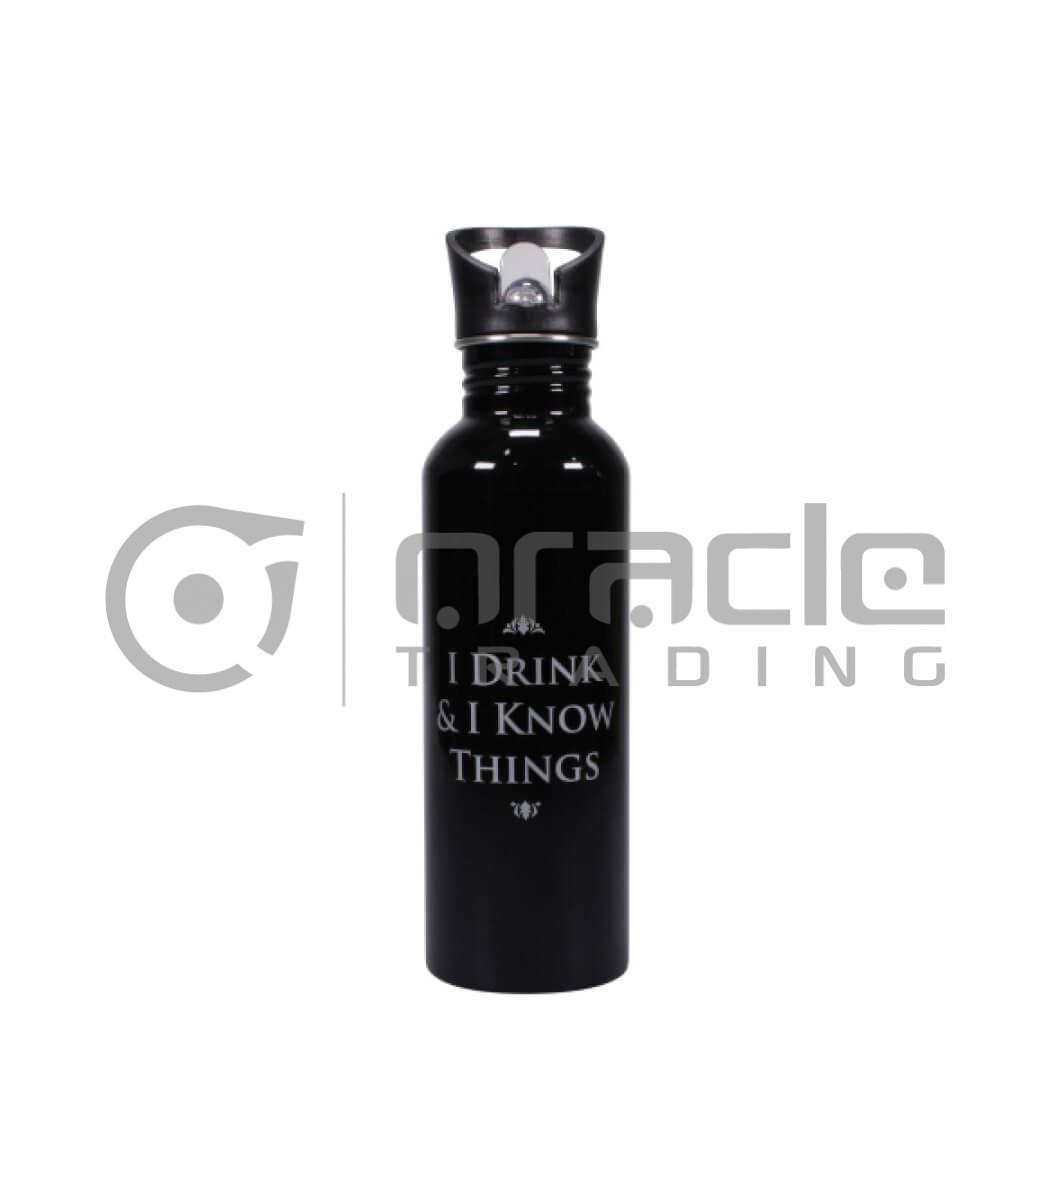 I Drink & I Know Things Canteen Bottle